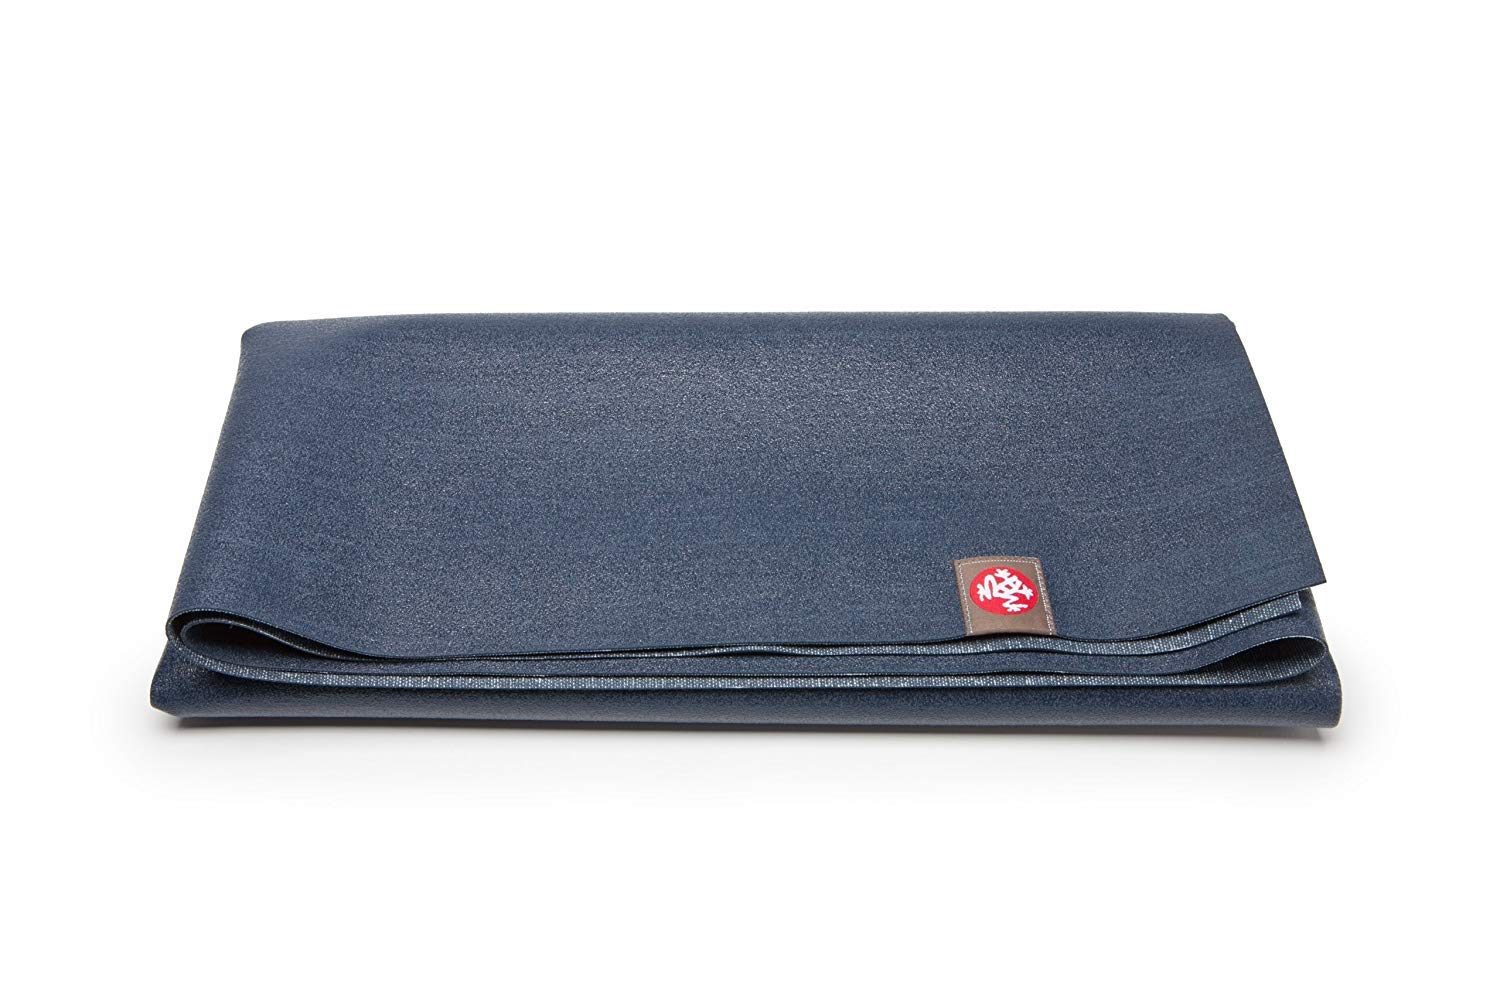 Amazon.com : Manduka EKO Superlite Yoga Travel Mat - 1.5mm ...